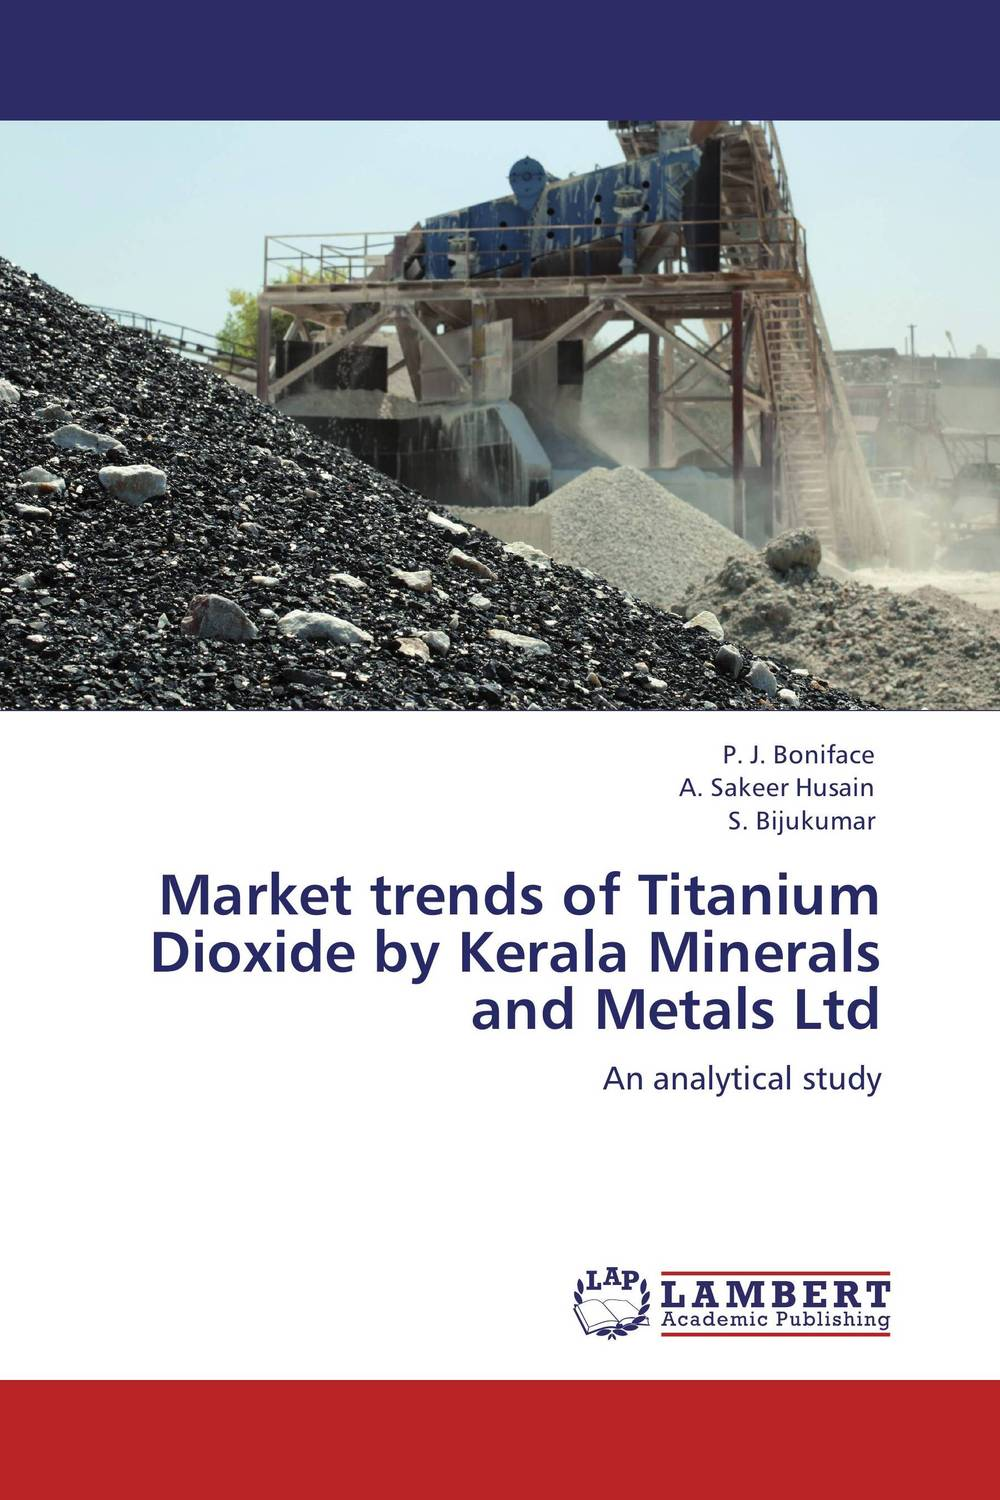 Market trends of Titanium Dioxide by Kerala Minerals and Metals Ltd adding value to the citrus pulp by enzyme biotechnology production